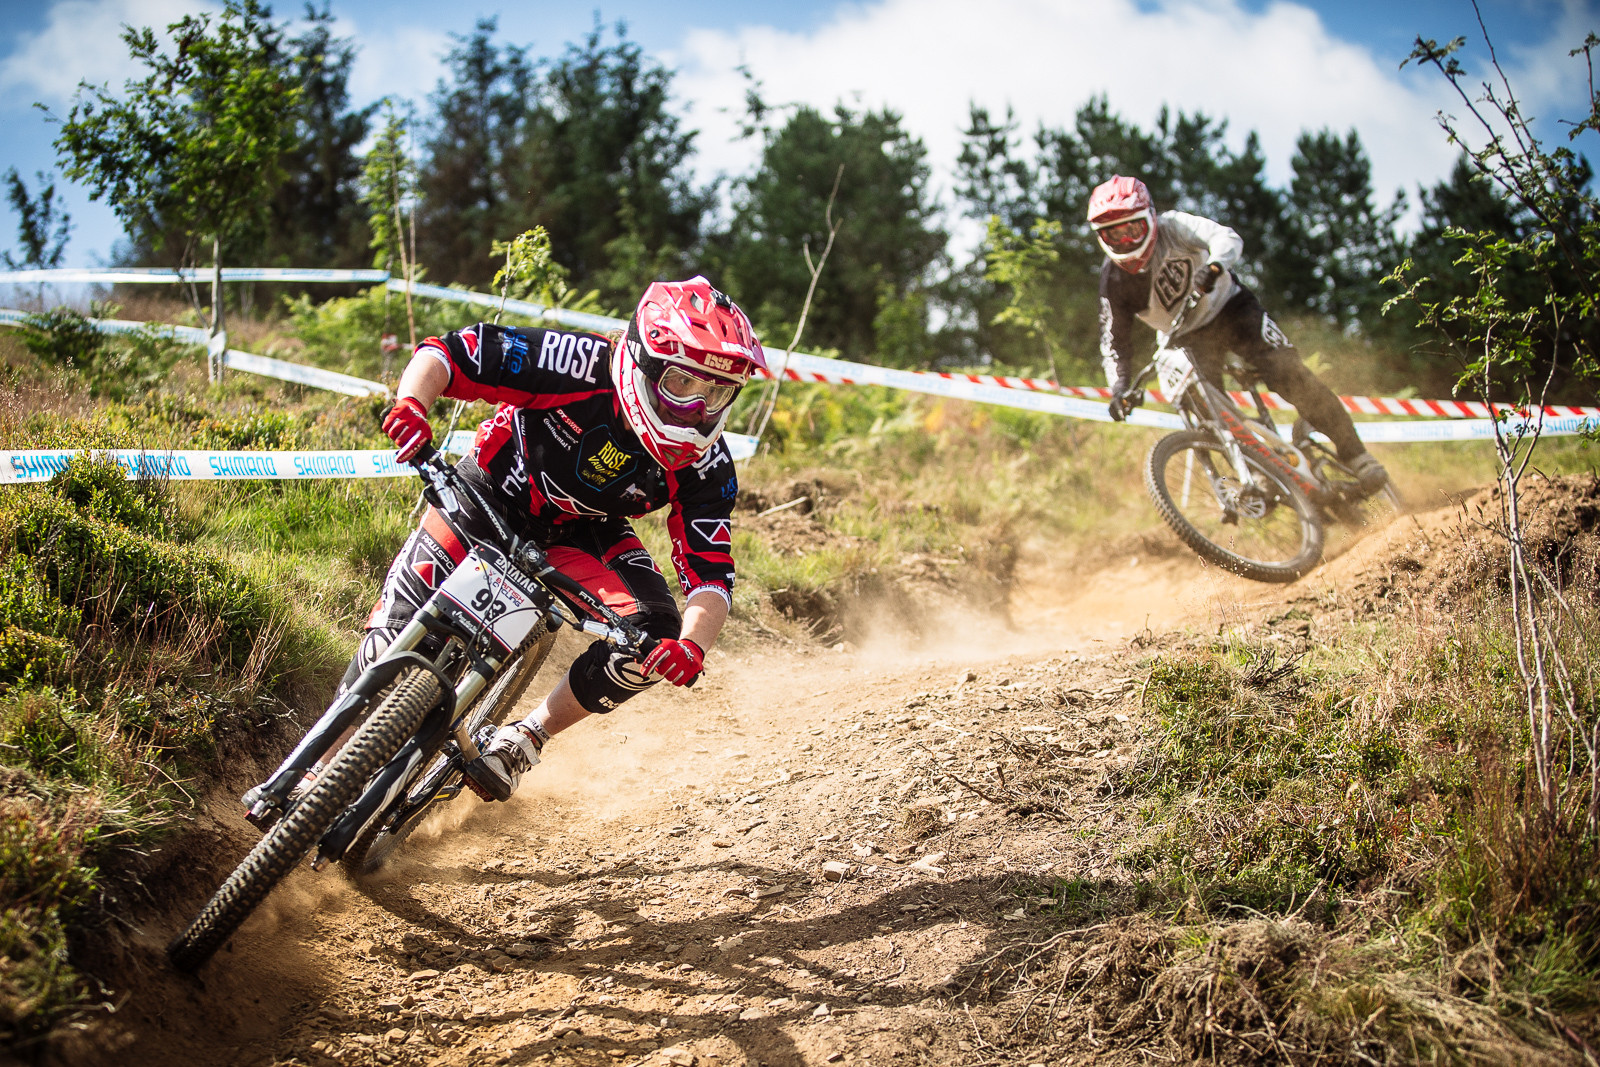 Katy Curd - 2015 British National Champs Downhill - 2015 British National Champs Downhill Photos - Mountain Biking Pictures - Vital MTB